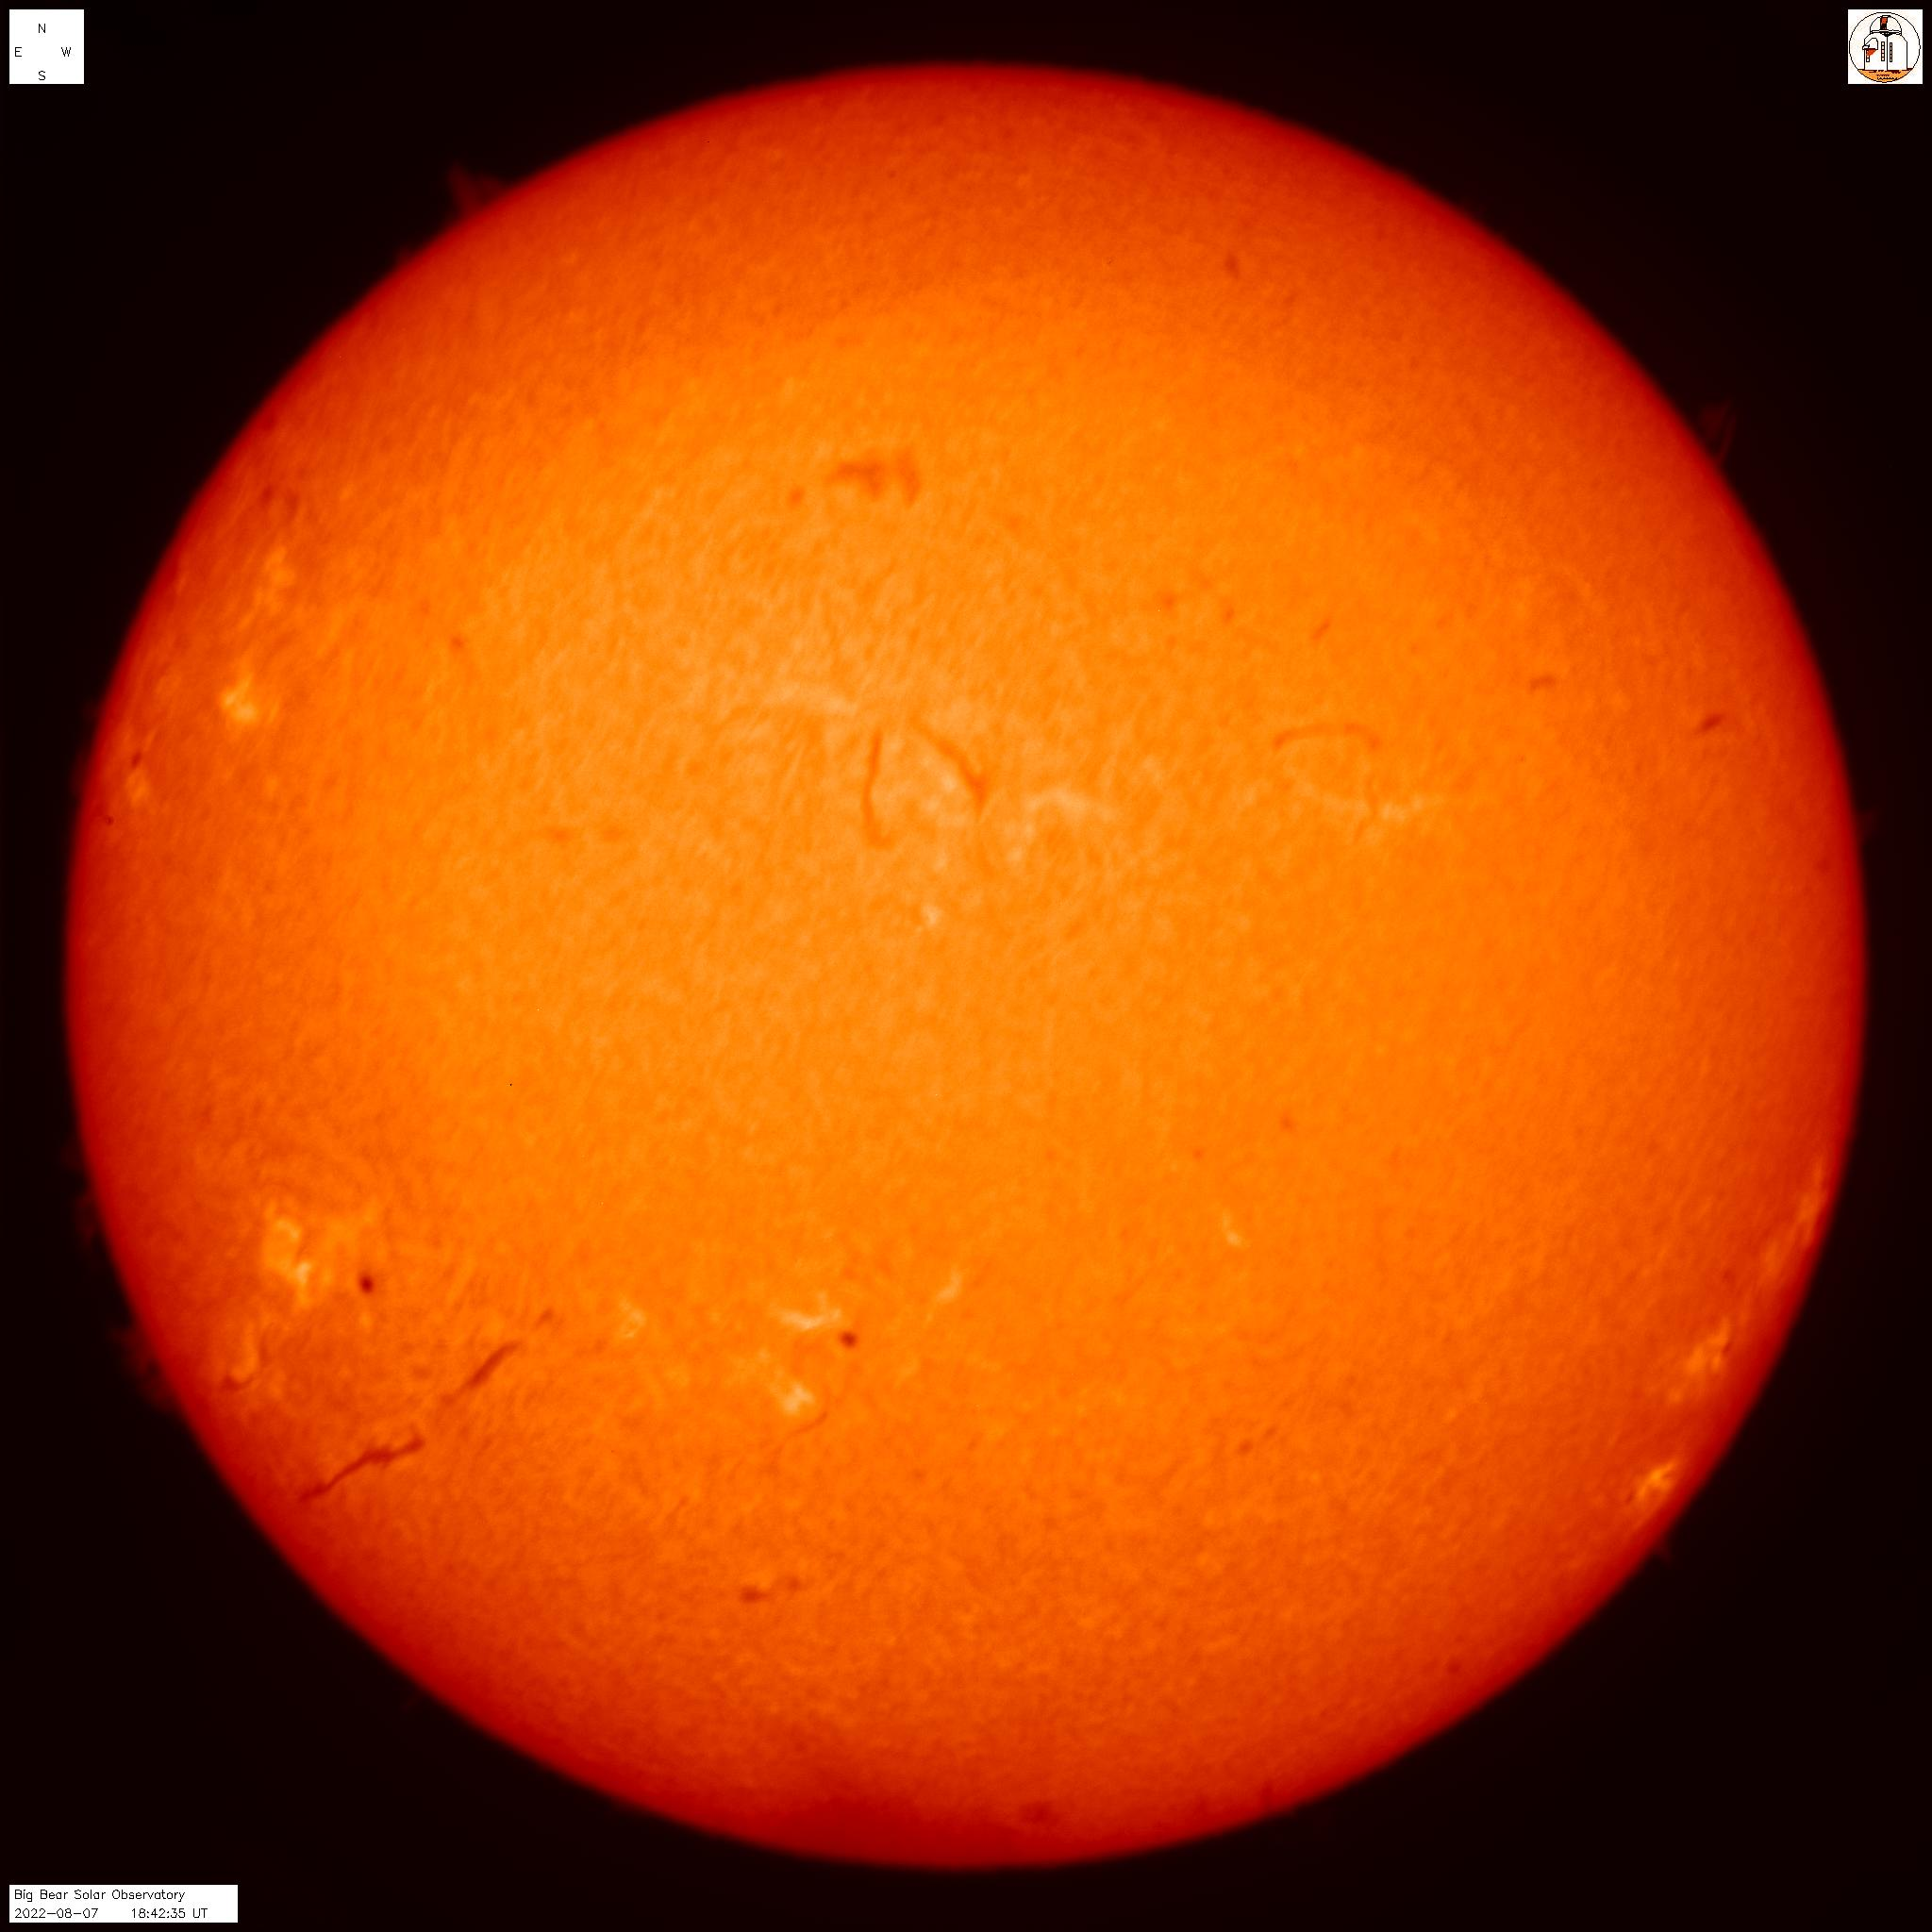 sunspot image from SDO